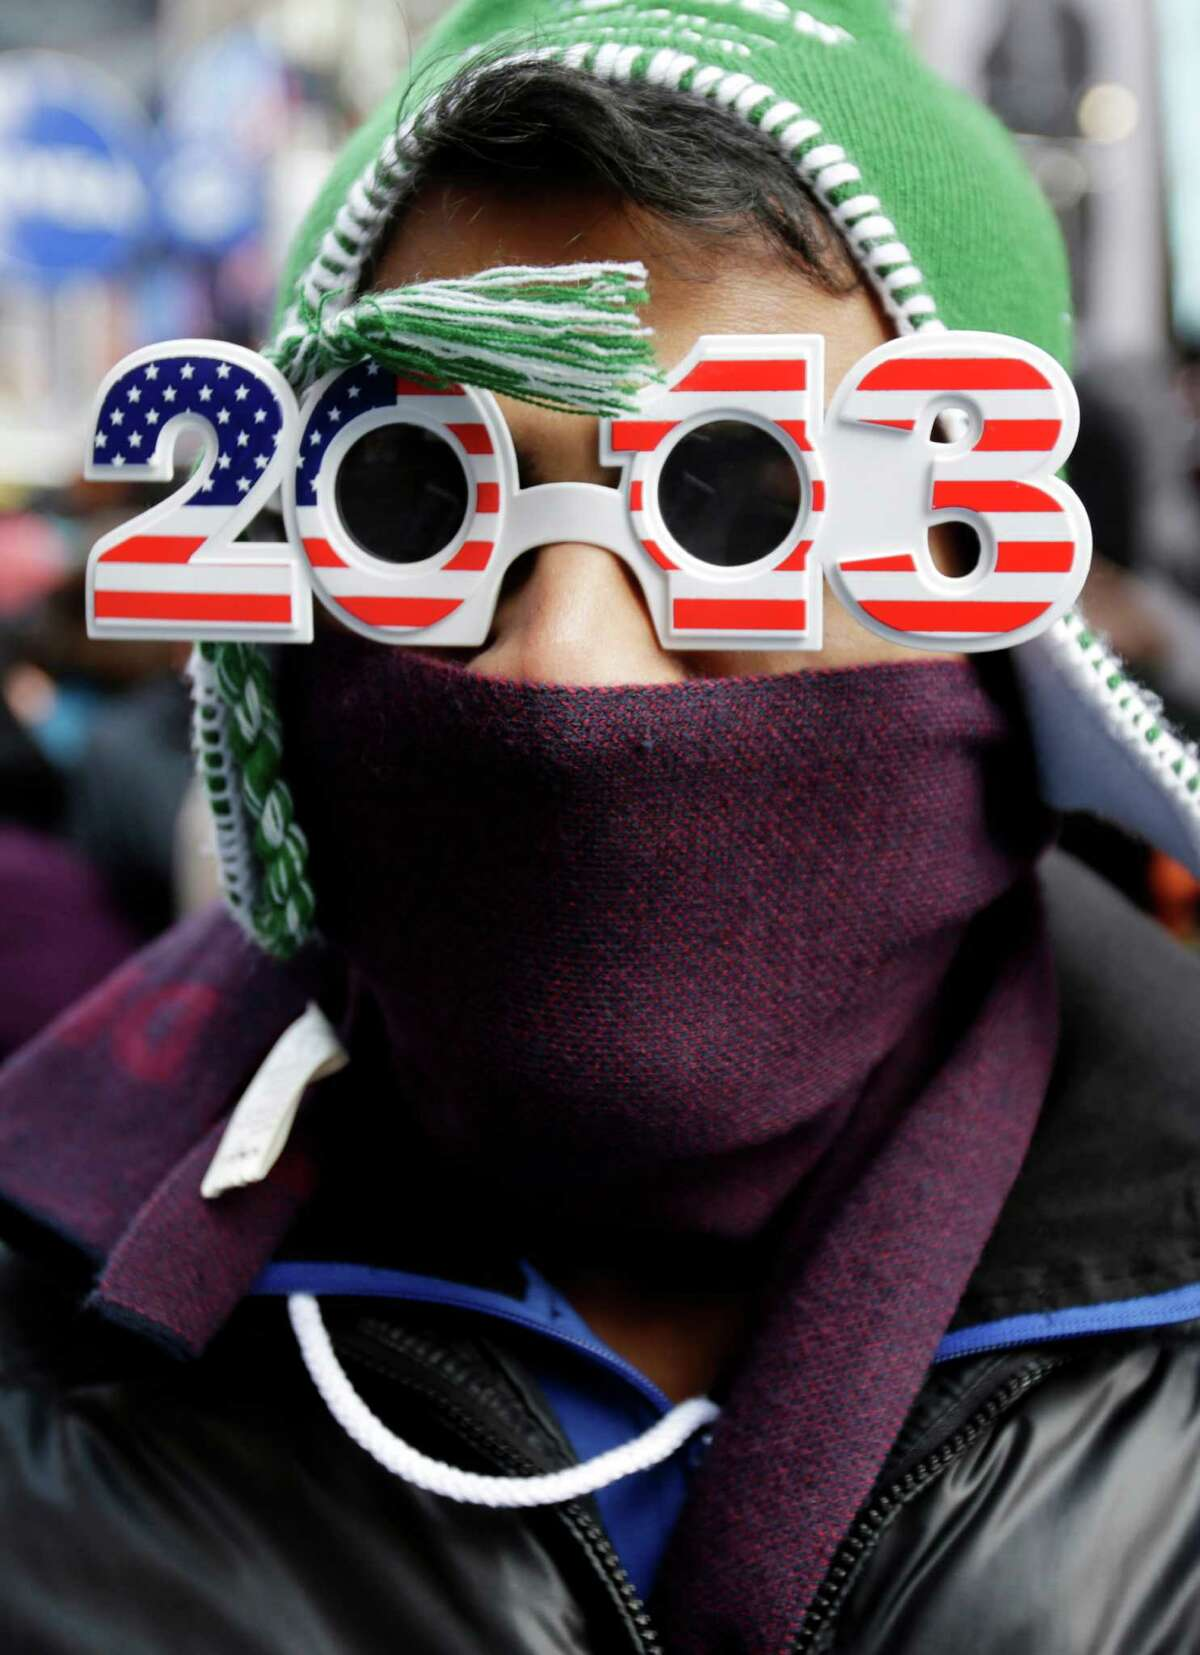 Pranav Patel of Toronto, is bundled up as he waits Monday morning, Dec. 31, 2012 for midnight in Times Square in New York, Monday, Dec. 31, 2012. An estimated 1 million people were expected to cram into district to see the crystal ball drop and countdown to 2013, organizers said.